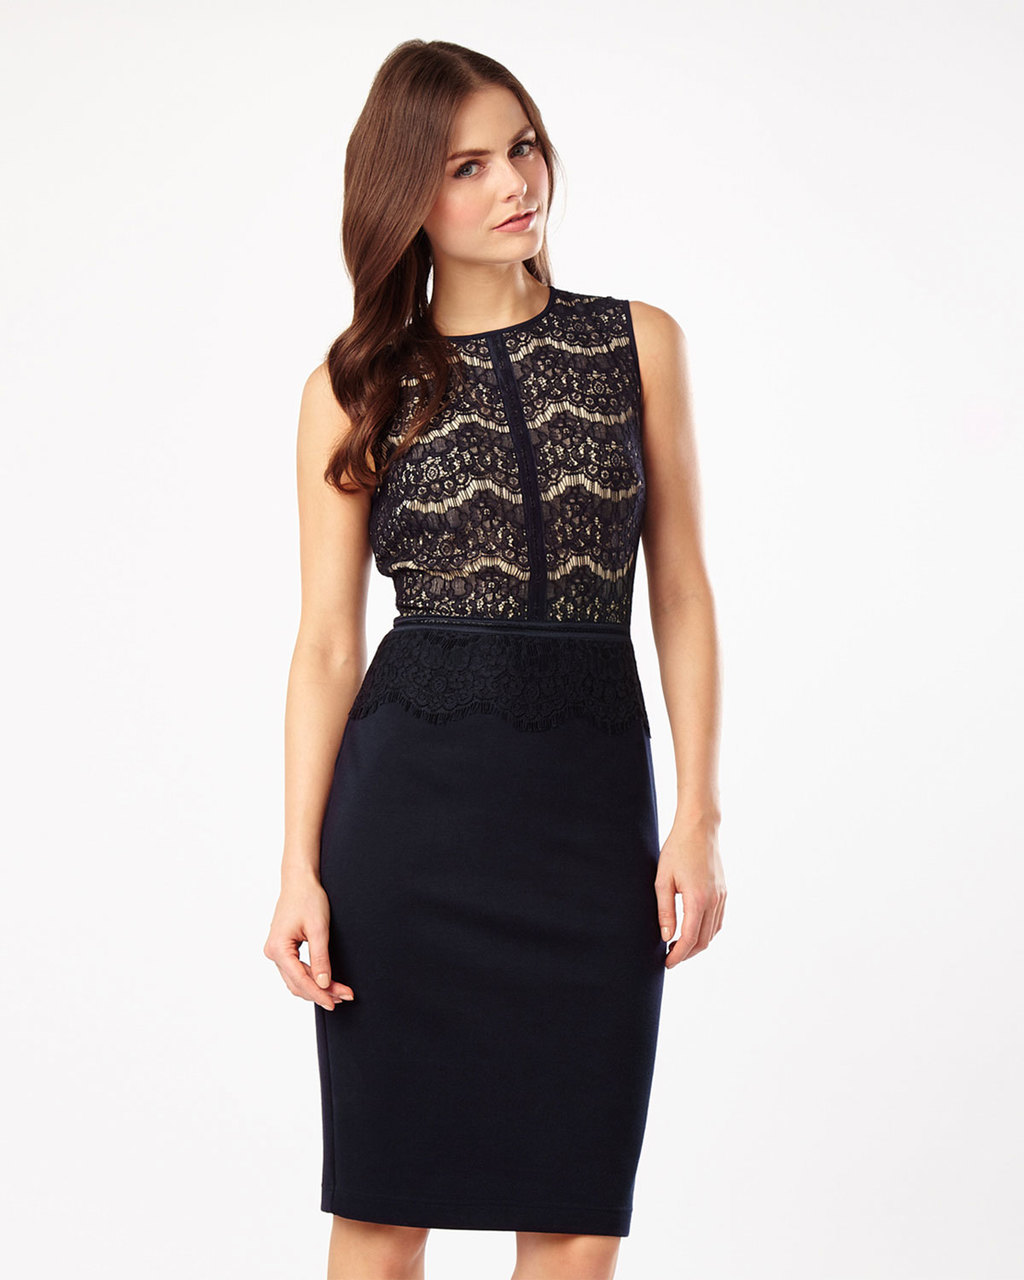 Ivy Lace Dress - style: shift; fit: tight; sleeve style: sleeveless; bust detail: added detail/embellishment at bust; hip detail: fitted at hip; secondary colour: nude; predominant colour: black; occasions: evening; length: on the knee; fibres: polyester/polyamide - stretch; neckline: crew; sleeve length: sleeveless; texture group: lace; pattern type: fabric; pattern: patterned/print; embellishment: lace; season: s/s 2016; wardrobe: event